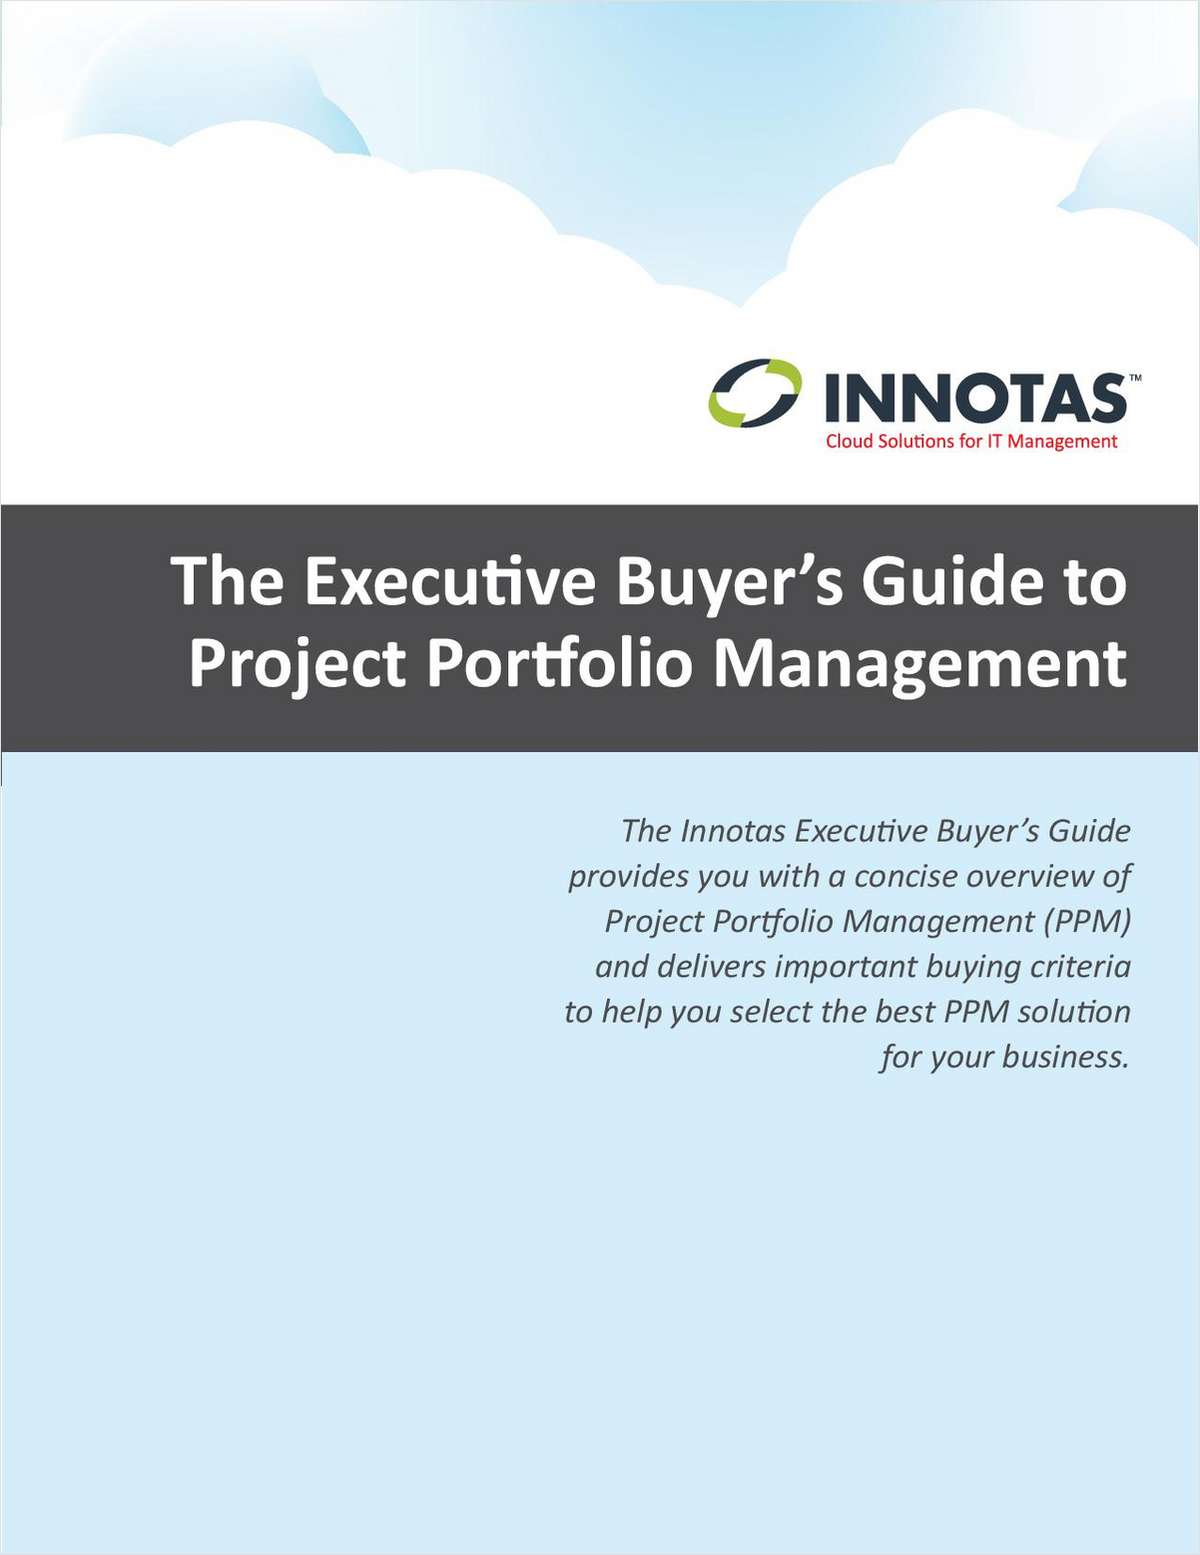 The Executive Buyer's Guide to Project Portfolio Management